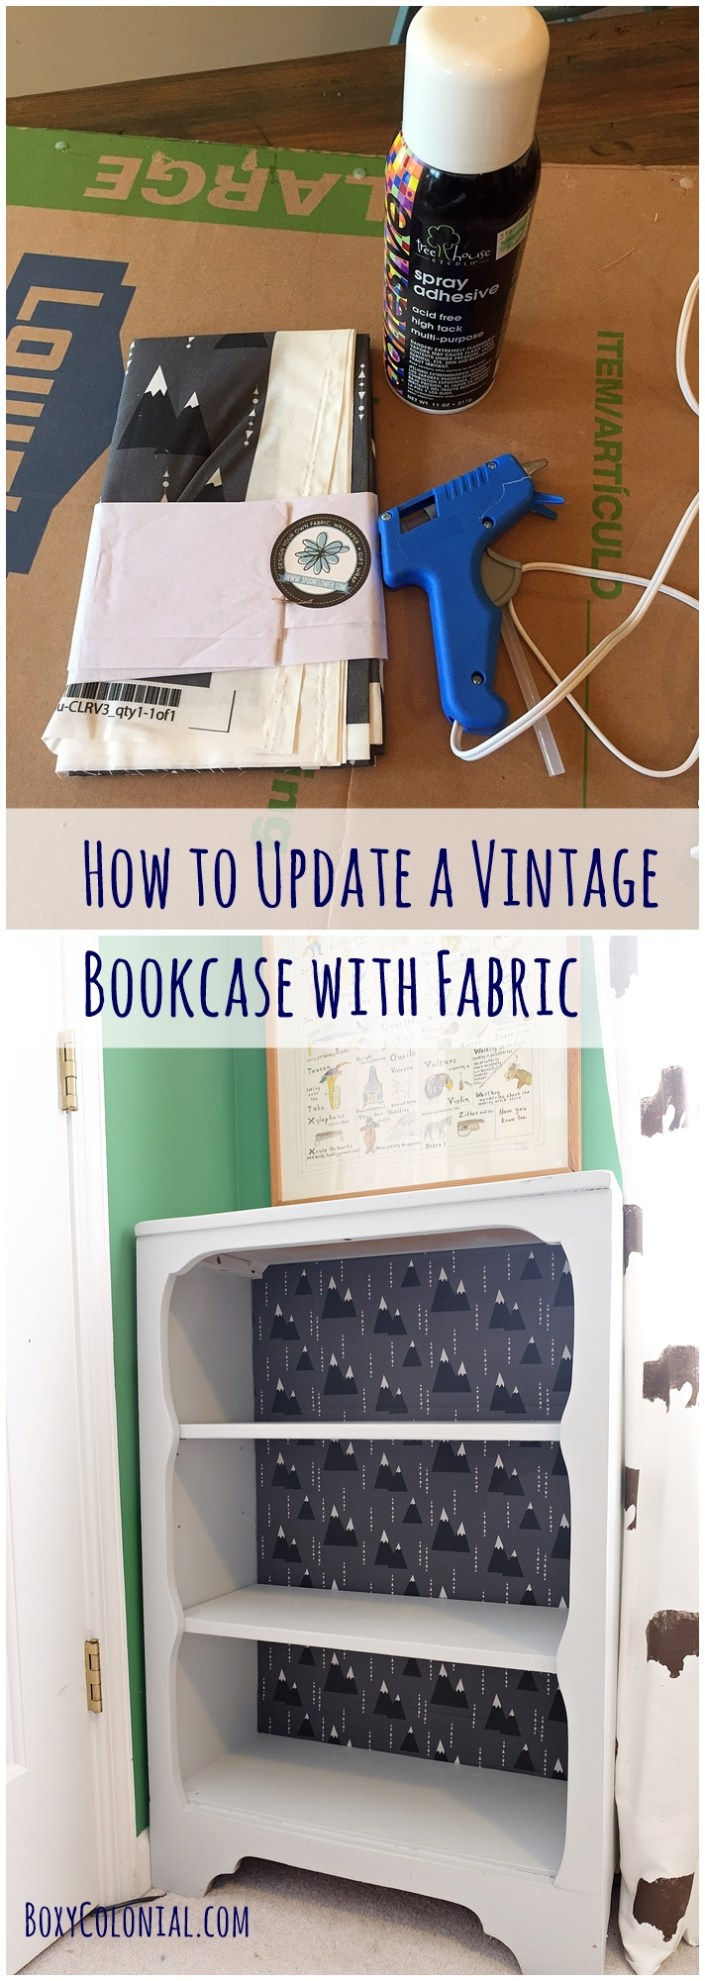 Updating a vintage bookcase with fabric from Spoonflower: full photo tutorial